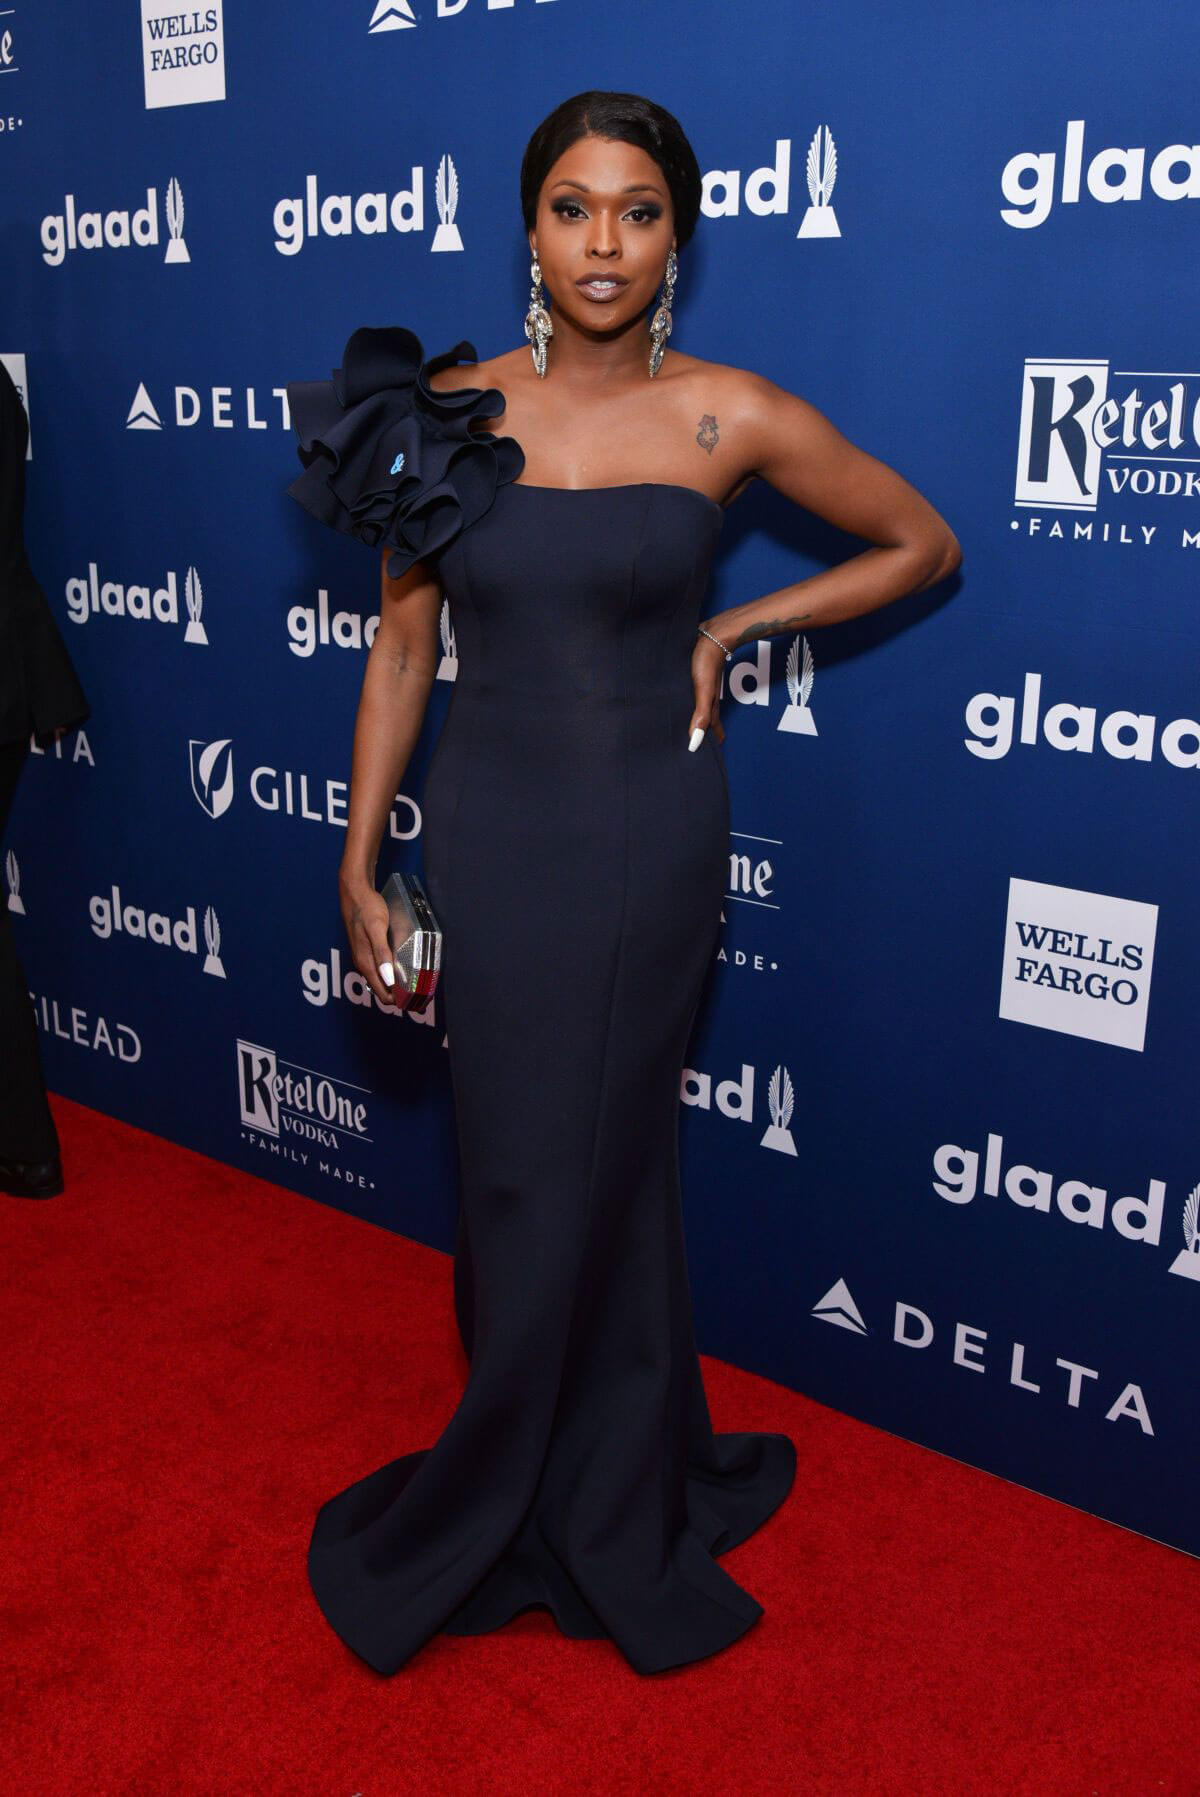 Amiyah Scott Stills at 2018 Glaad Media Awards in New York 2018/05/05 5